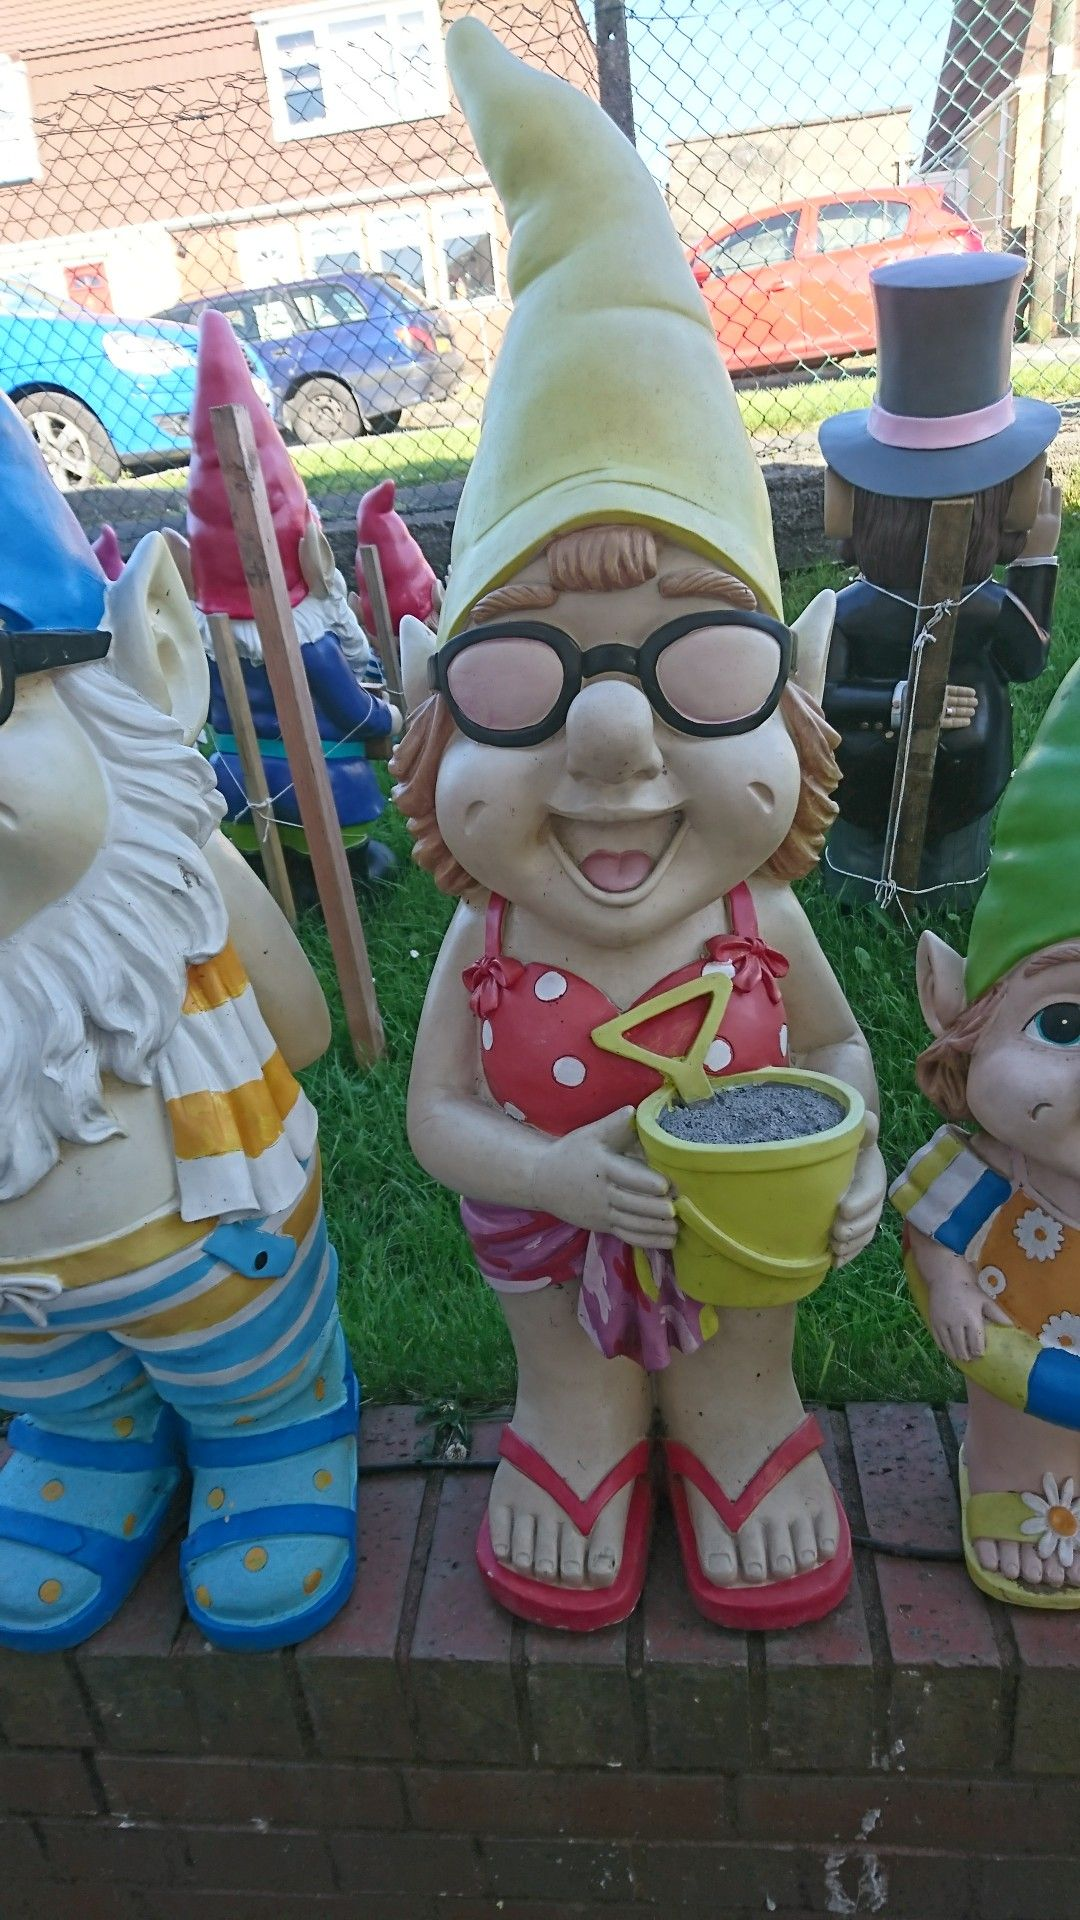 Pin by Allison D on Gnomes Asda gnomes, Christmas ornaments